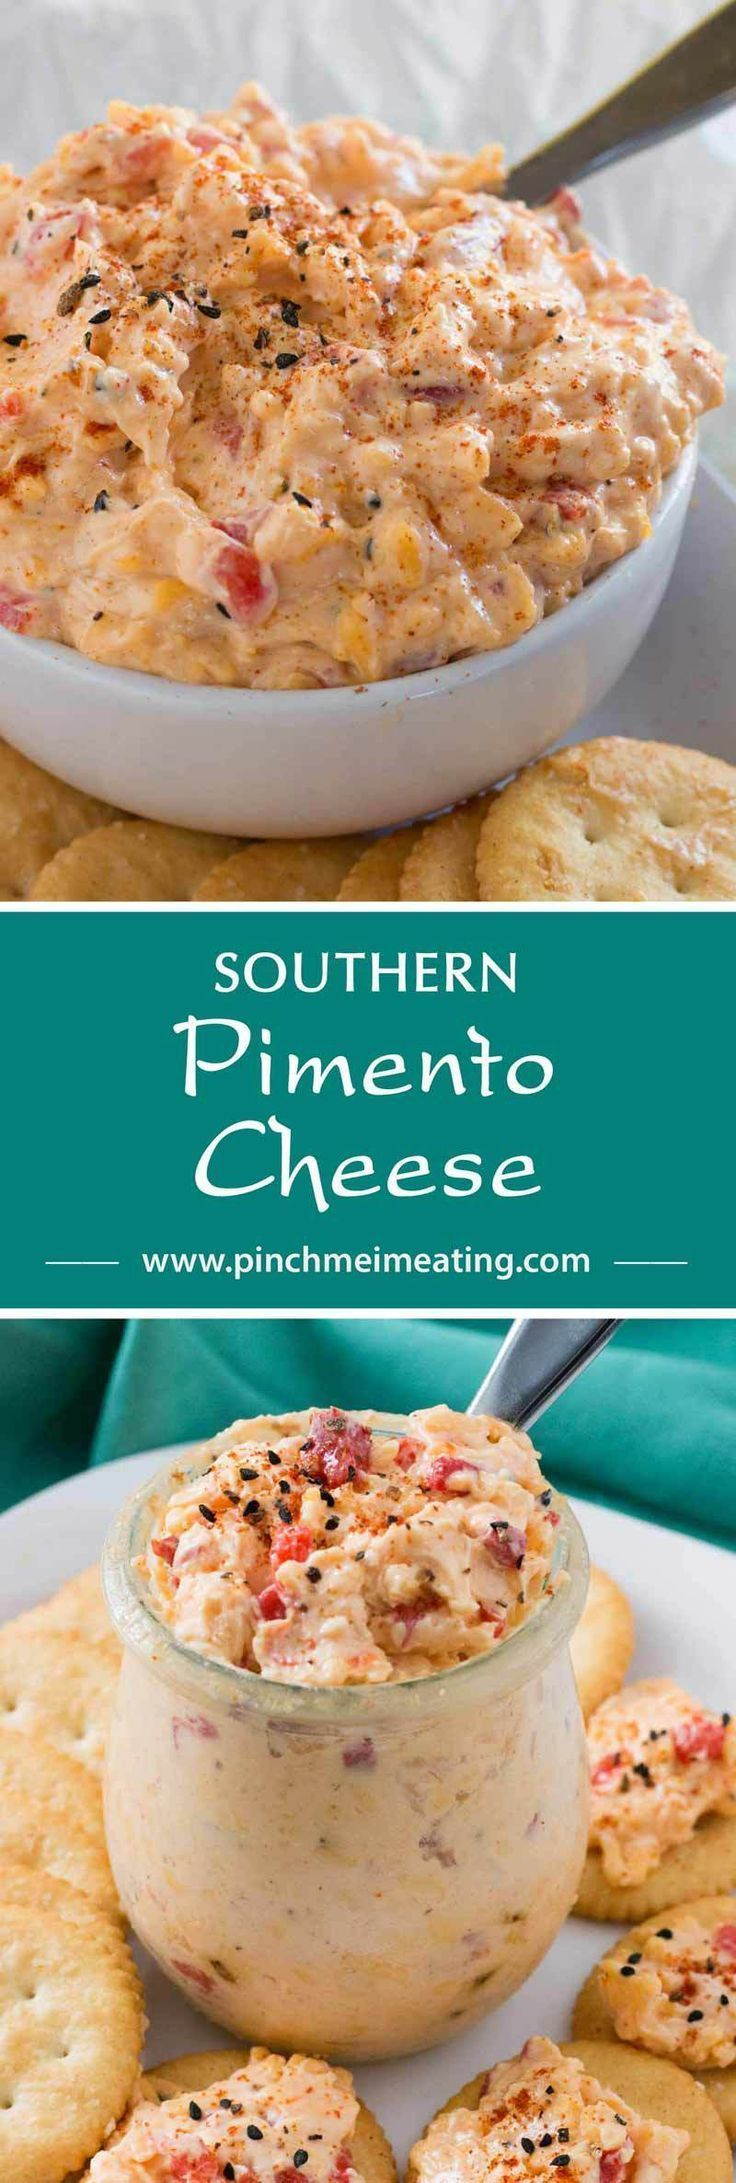 With ample seasonings and just a little kick, creamy Southern pimento cheese is great with everything from crackers or burgers to crab cakes or grits! This cheddar cheese spread also makes a great col (Favorite Cake Low Carb)